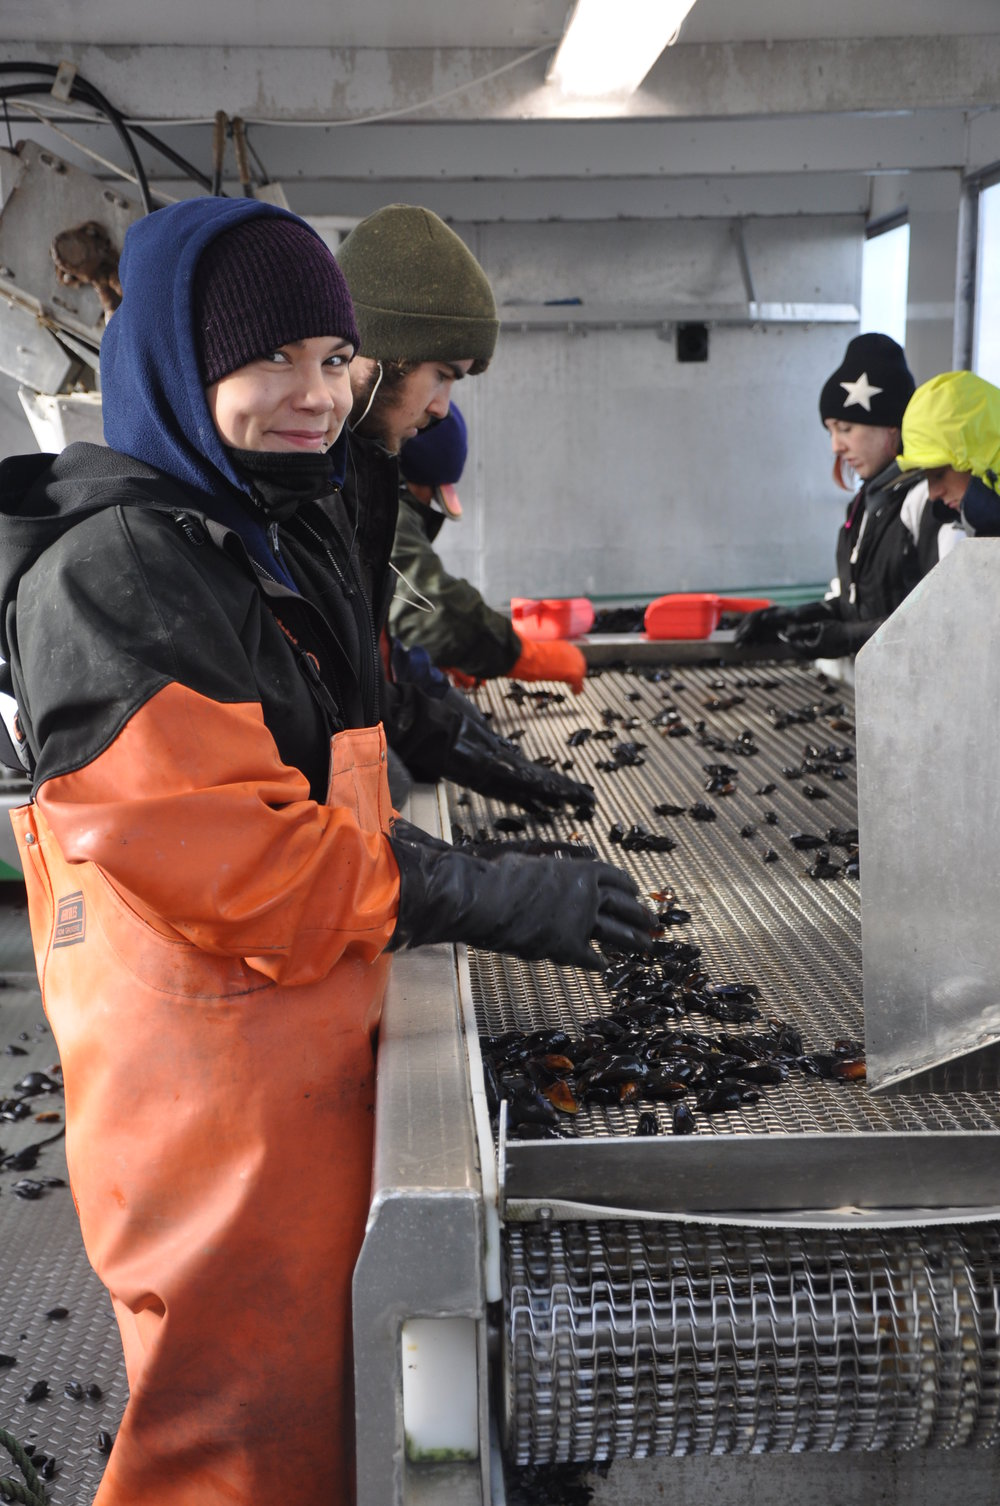 The process of inspecting mussels before they are weighed and packed takes place regularly so that our customers are guaranteed the freshest of shellfish available. The products we deliver not only include our mussels, but also Manila Clams and a full line of oysters--all fresh from the water.